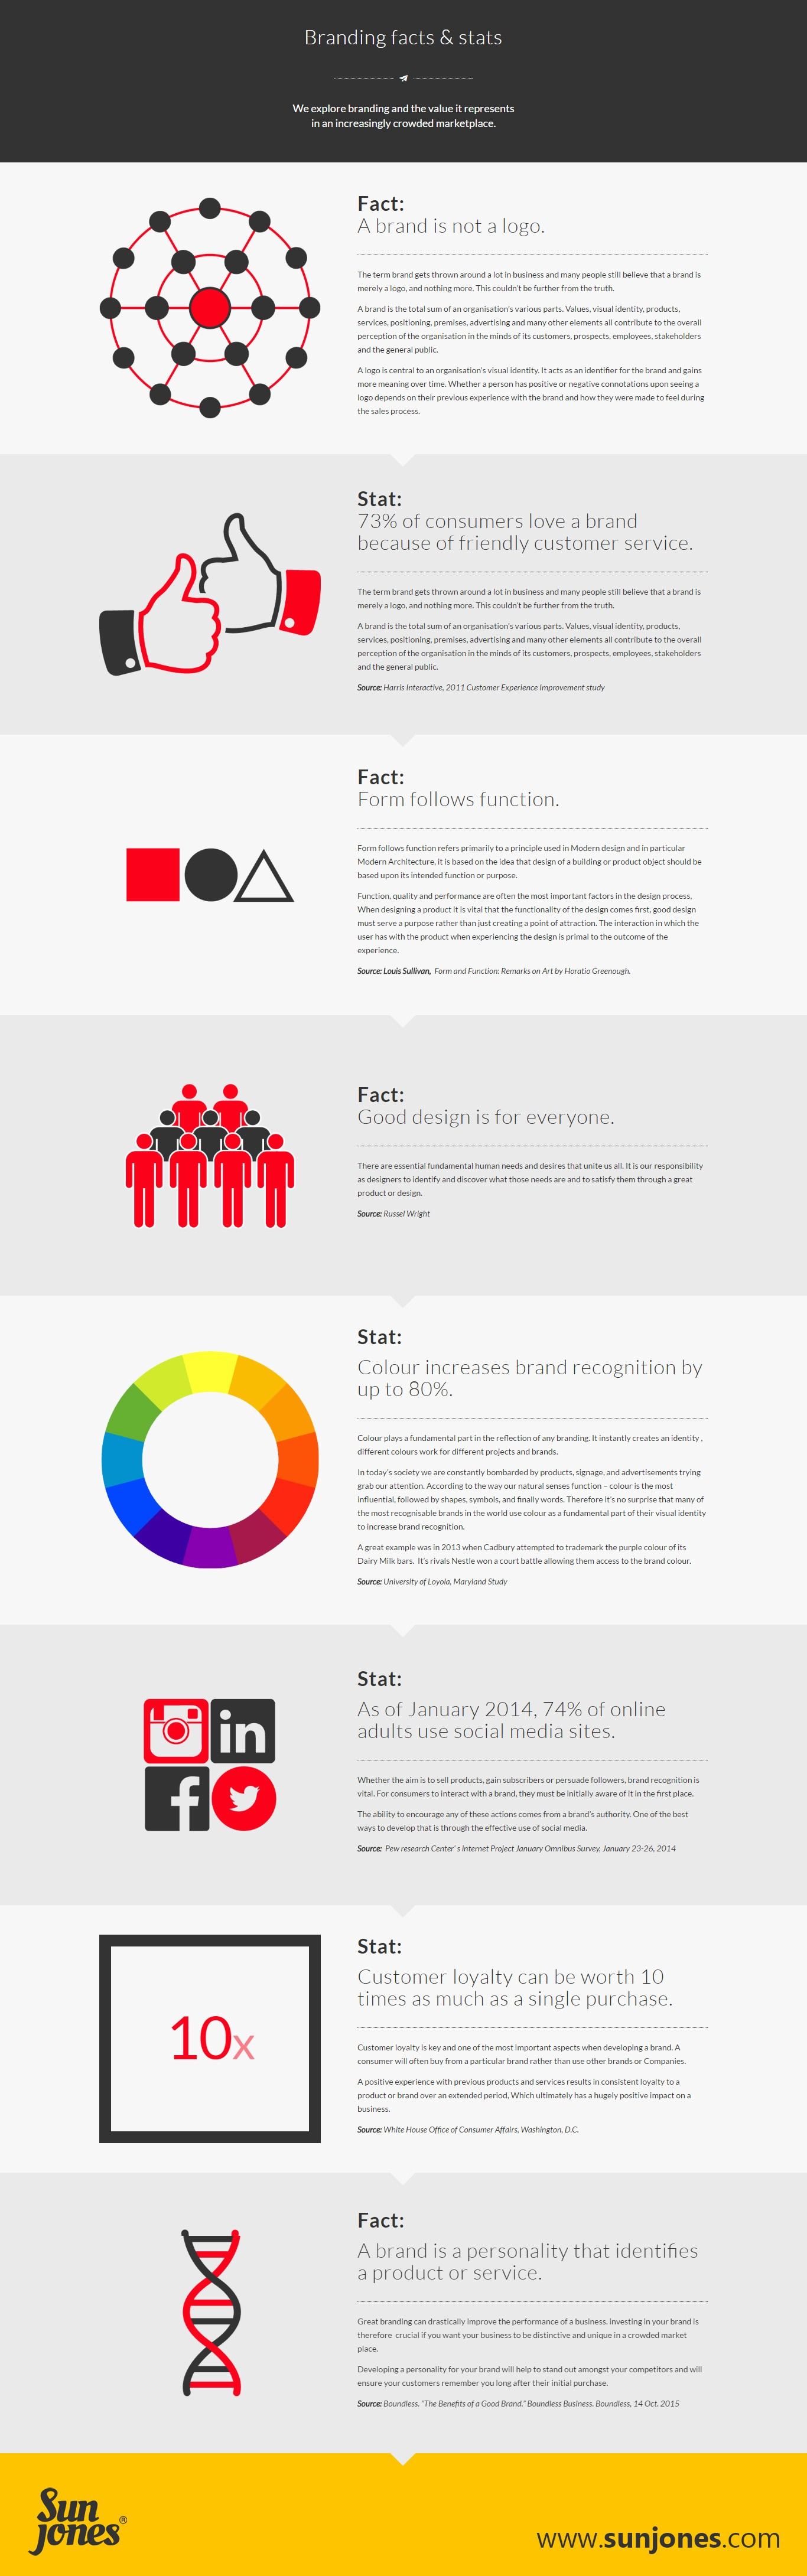 Branding Facts and Stats Infographic